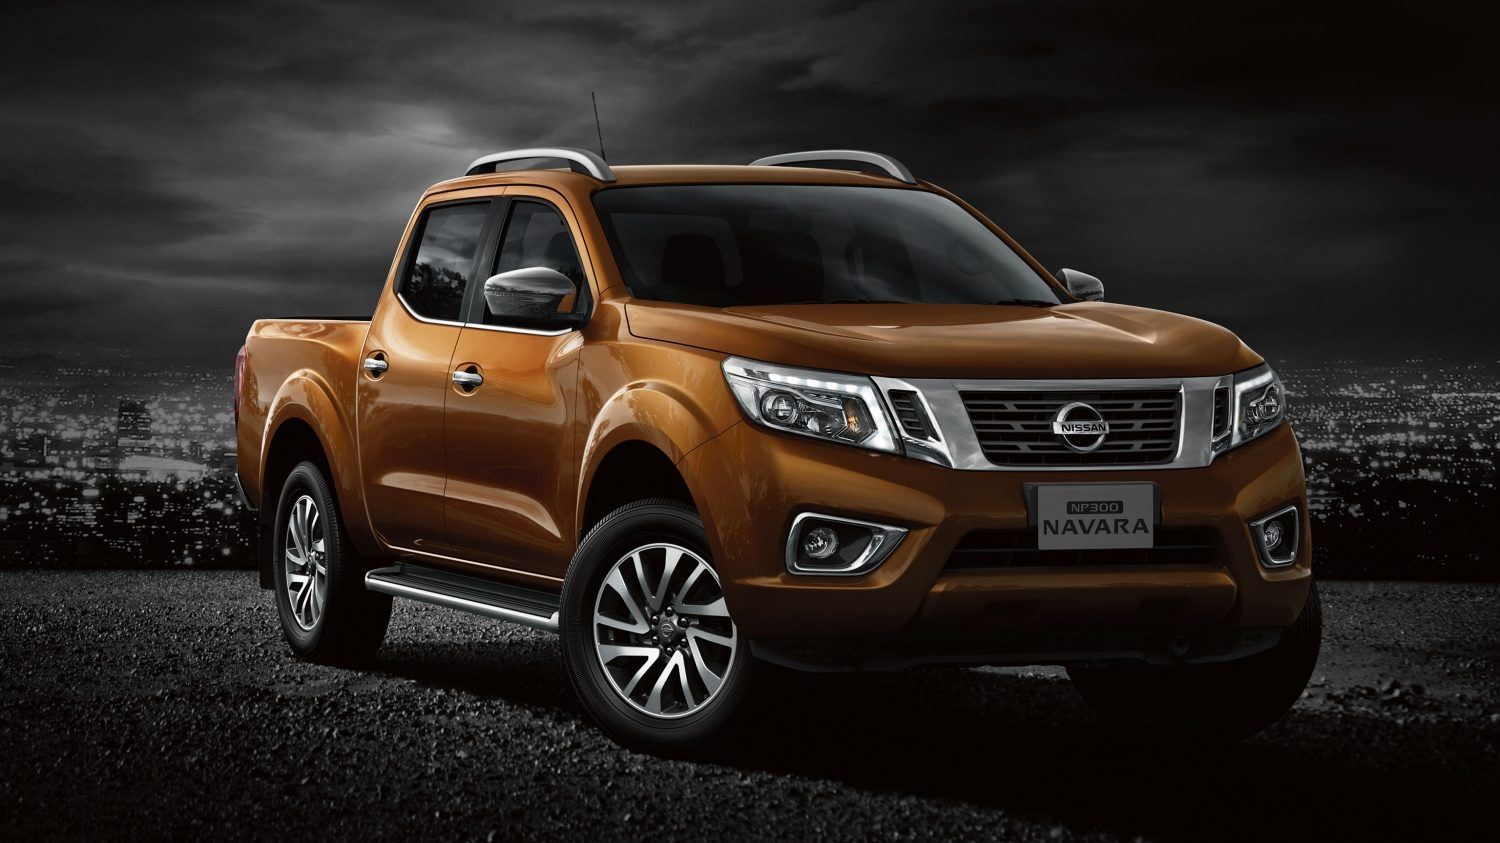 Nissan Navara - Video